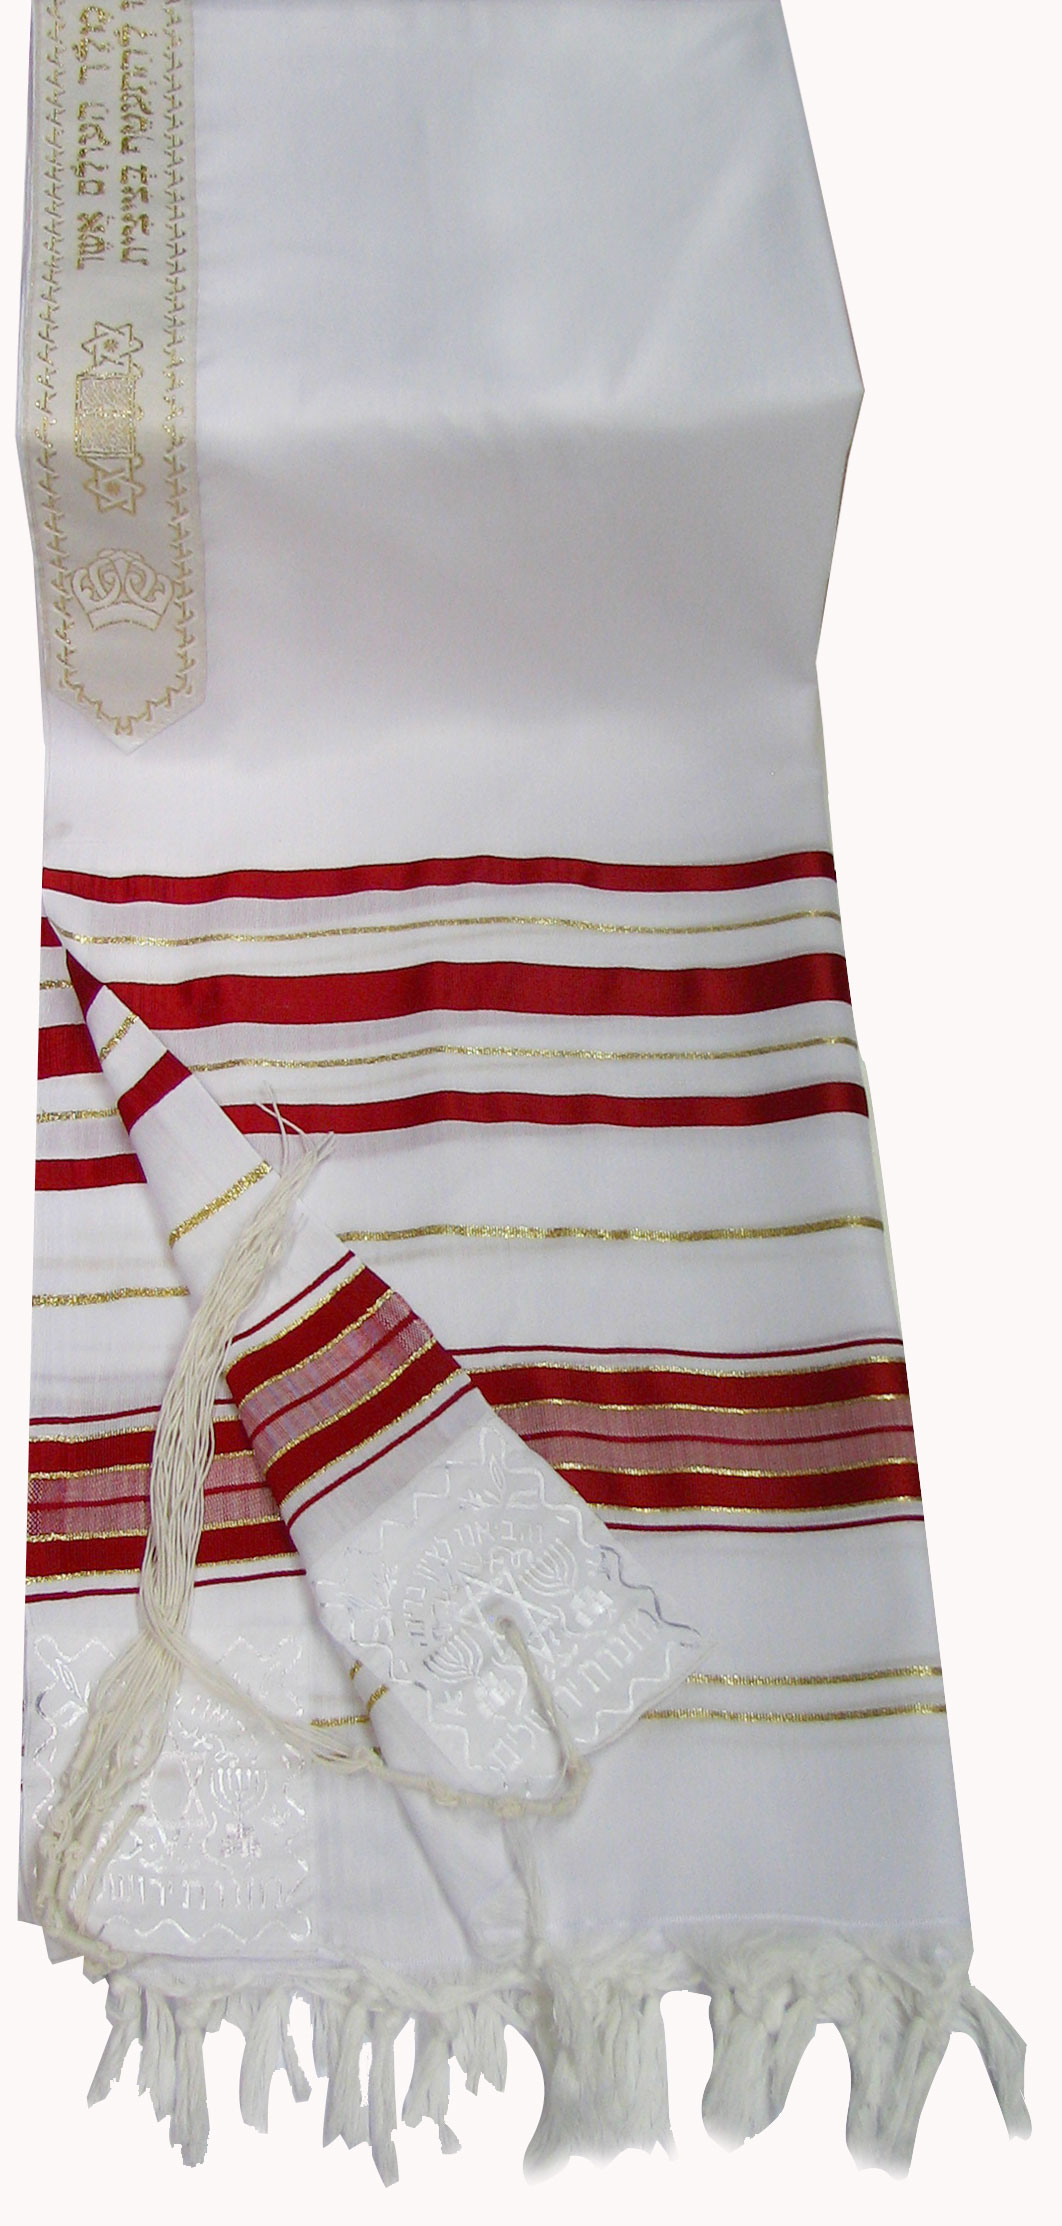 crylic (Imitation Wool) Tallit Prayer Shawl in Red and ...